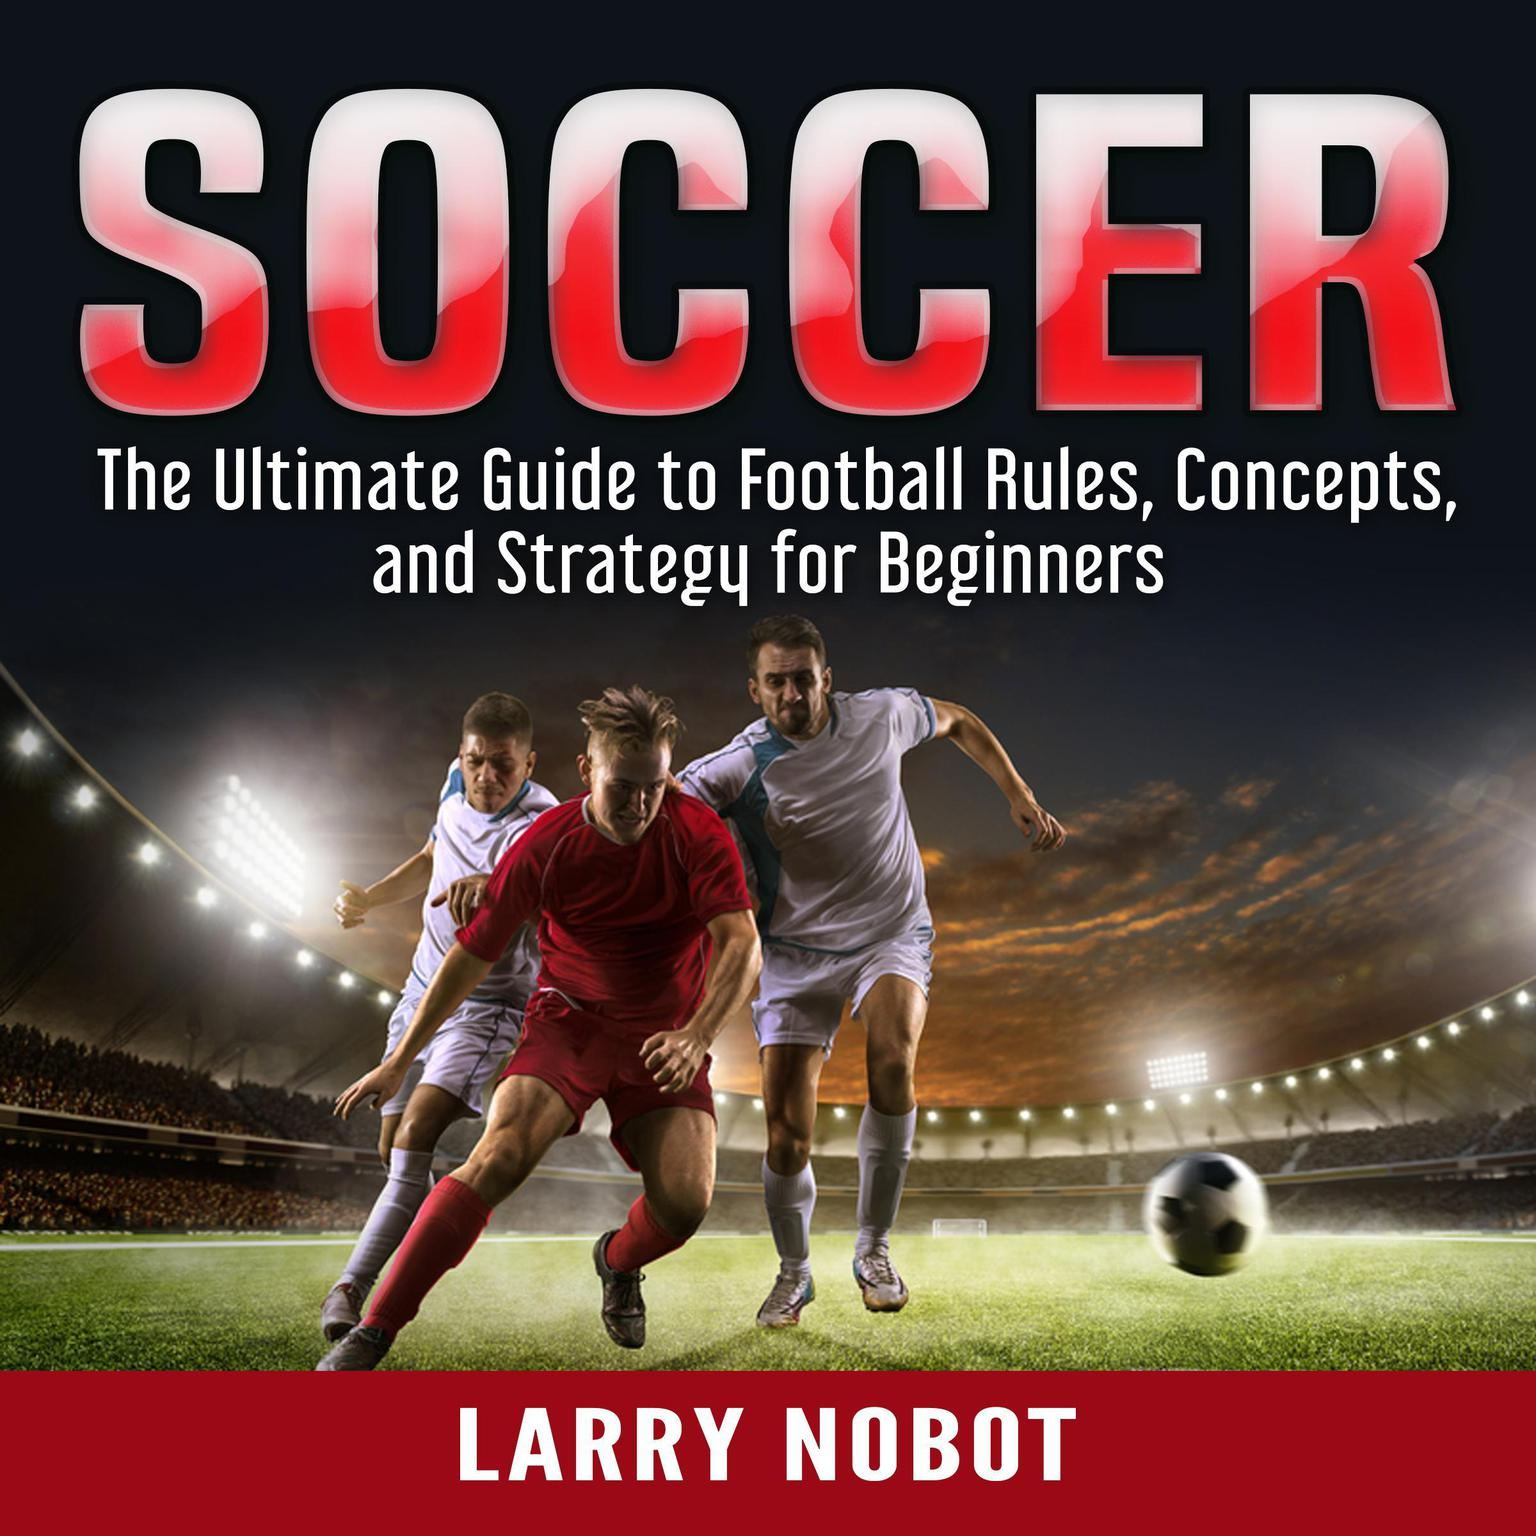 Soccer: The Ultimate Guide to Soccer Rules, Concepts, and Strategy for Beginners Audiobook, by Larry Nobot